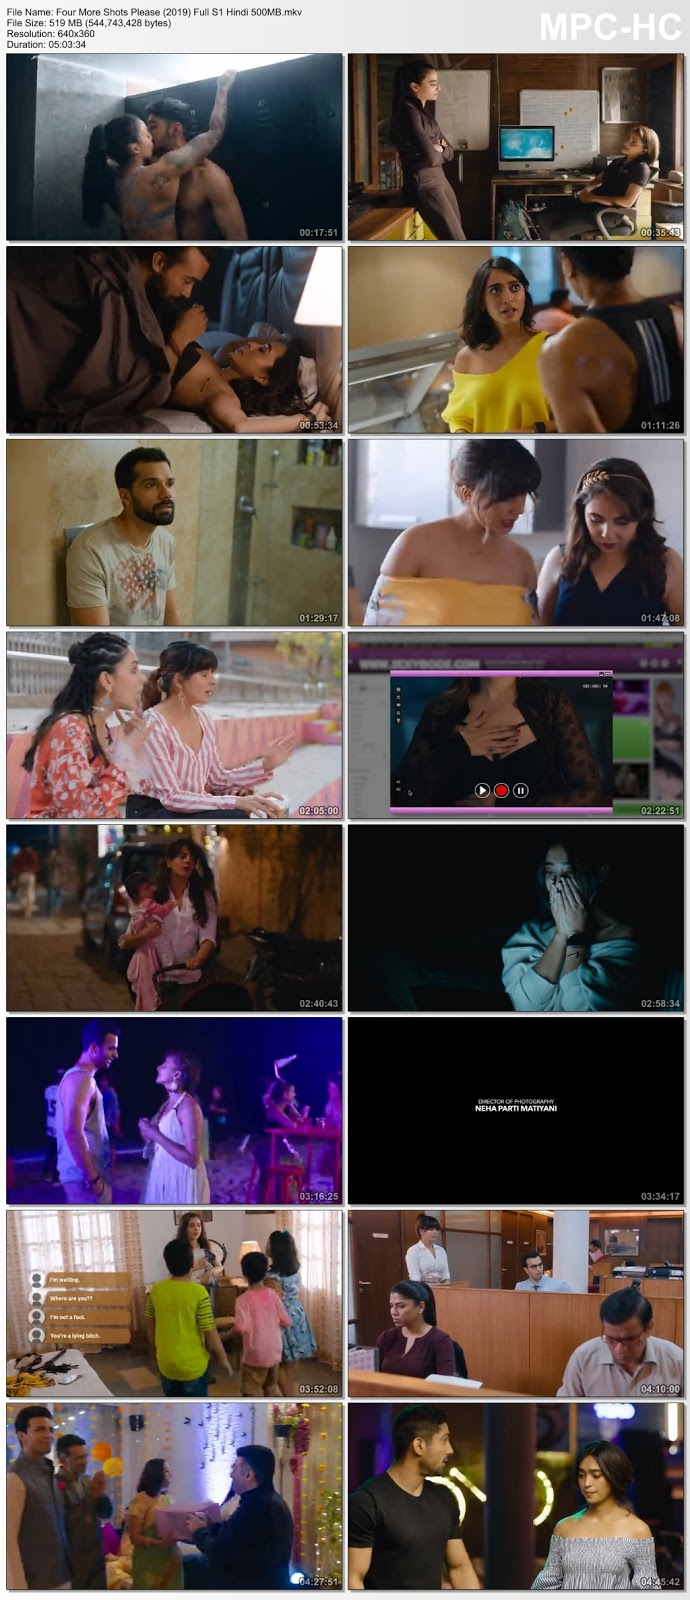 Four More Shots Please (2019) Hindi 360p HDRip Complete S1 – 500MB Desirehub